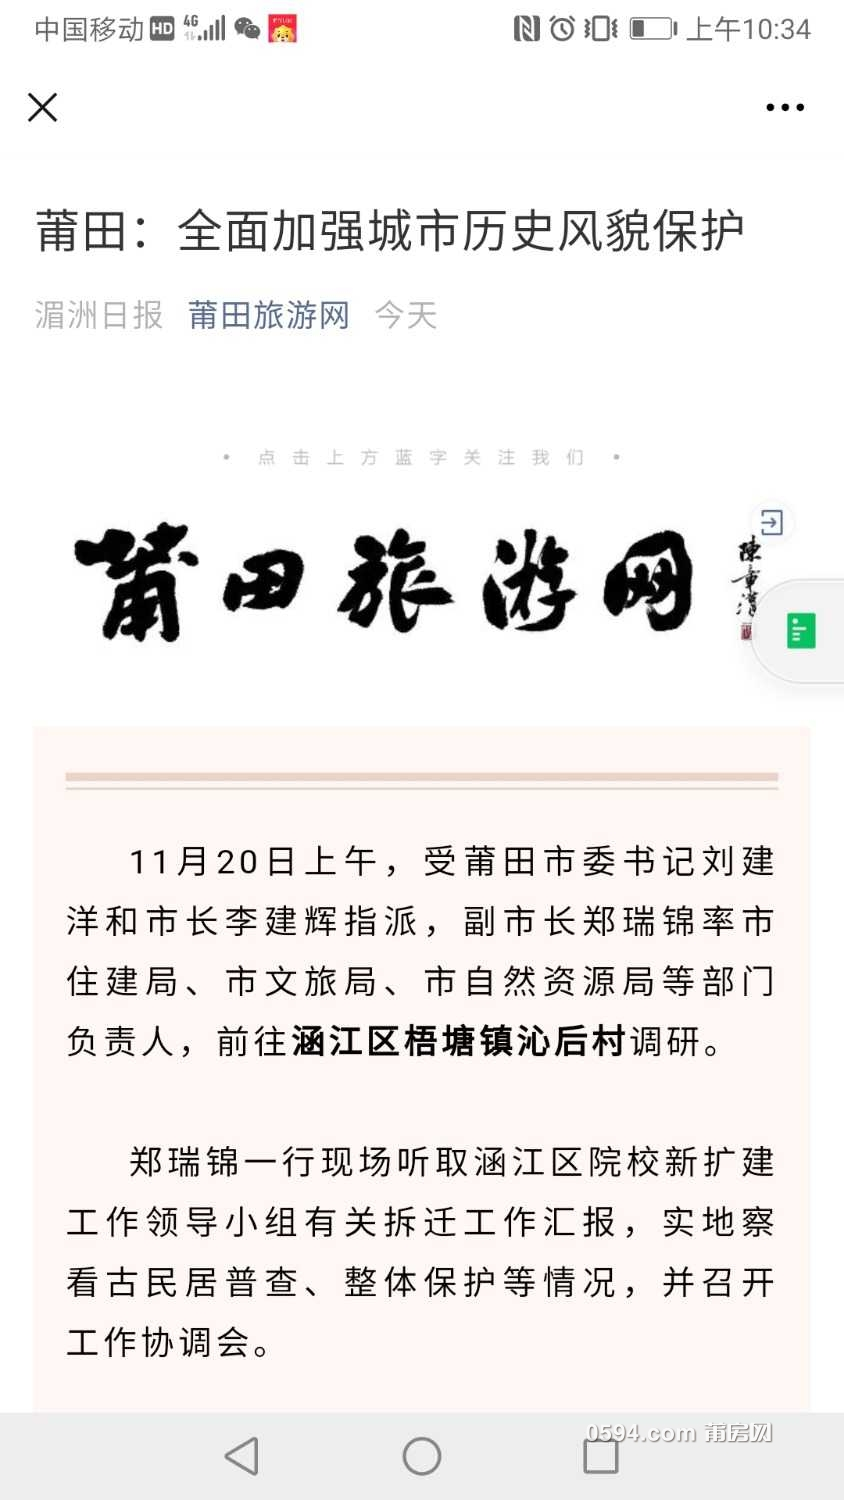 Screenshot_20201121_103427_com.tencent.mm.jpg